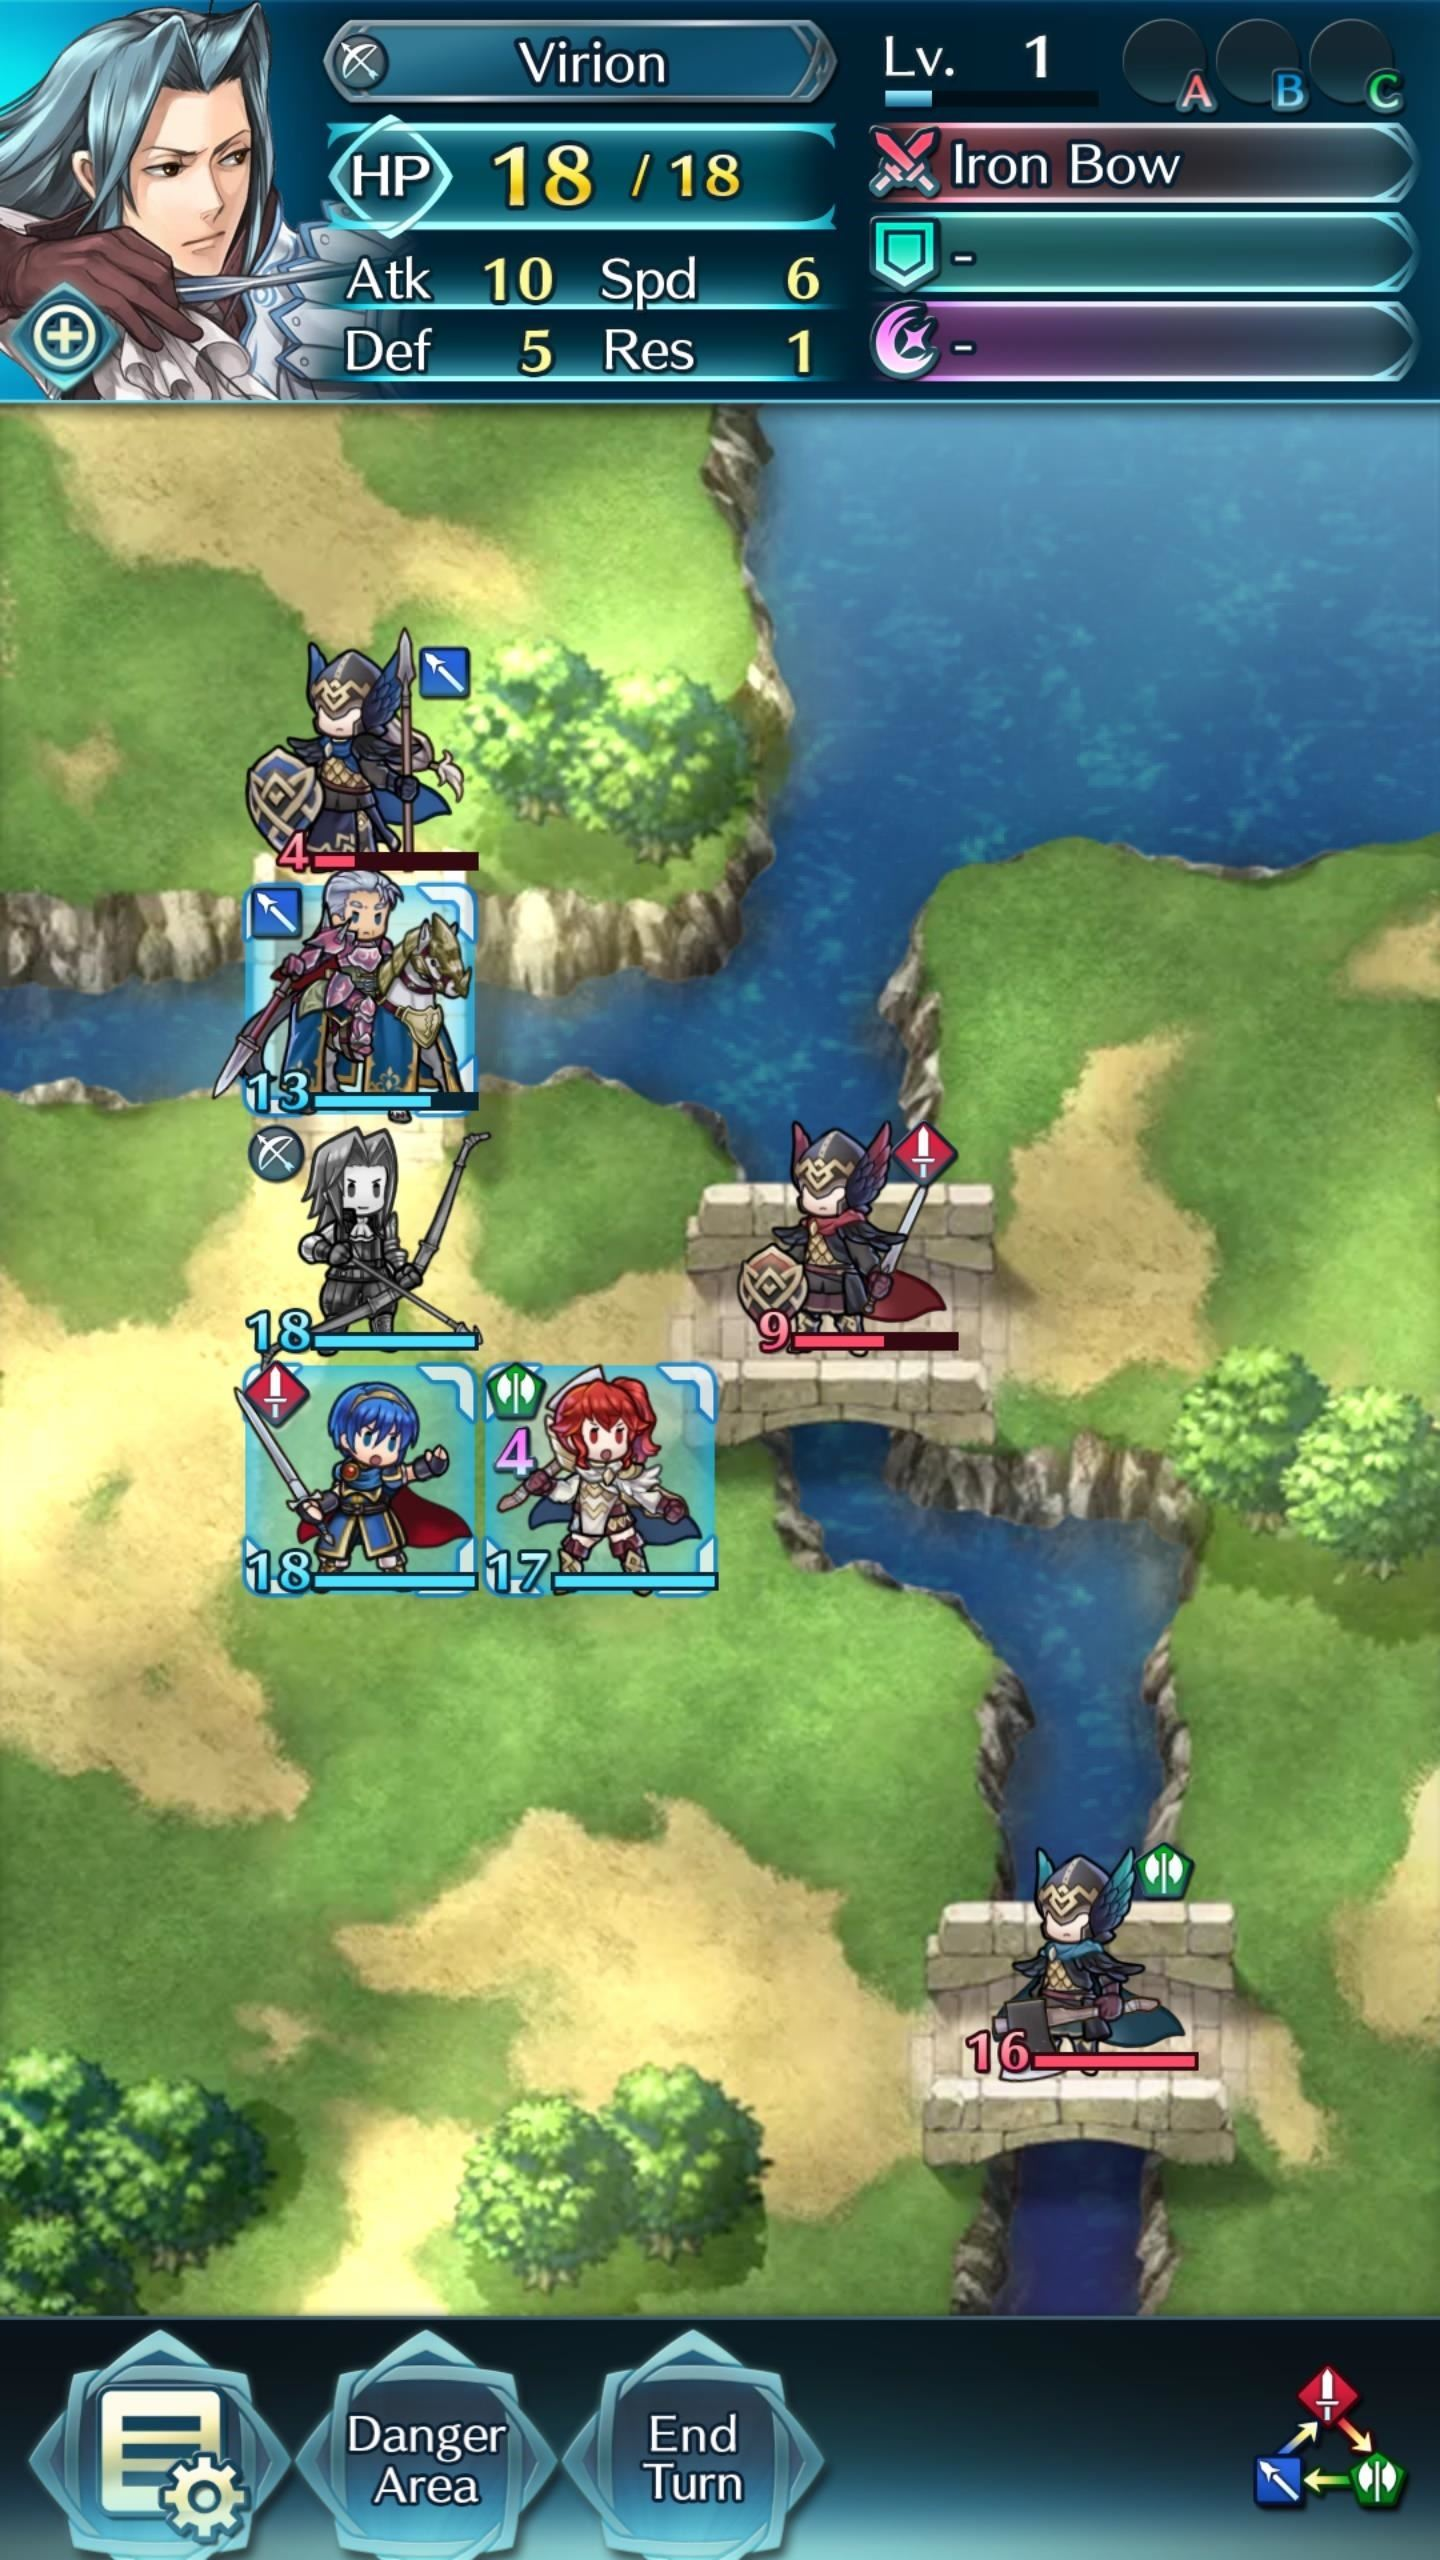 How to Get Nintendo's Fire Emblem Heroes Game on Your Android Phone Right Now